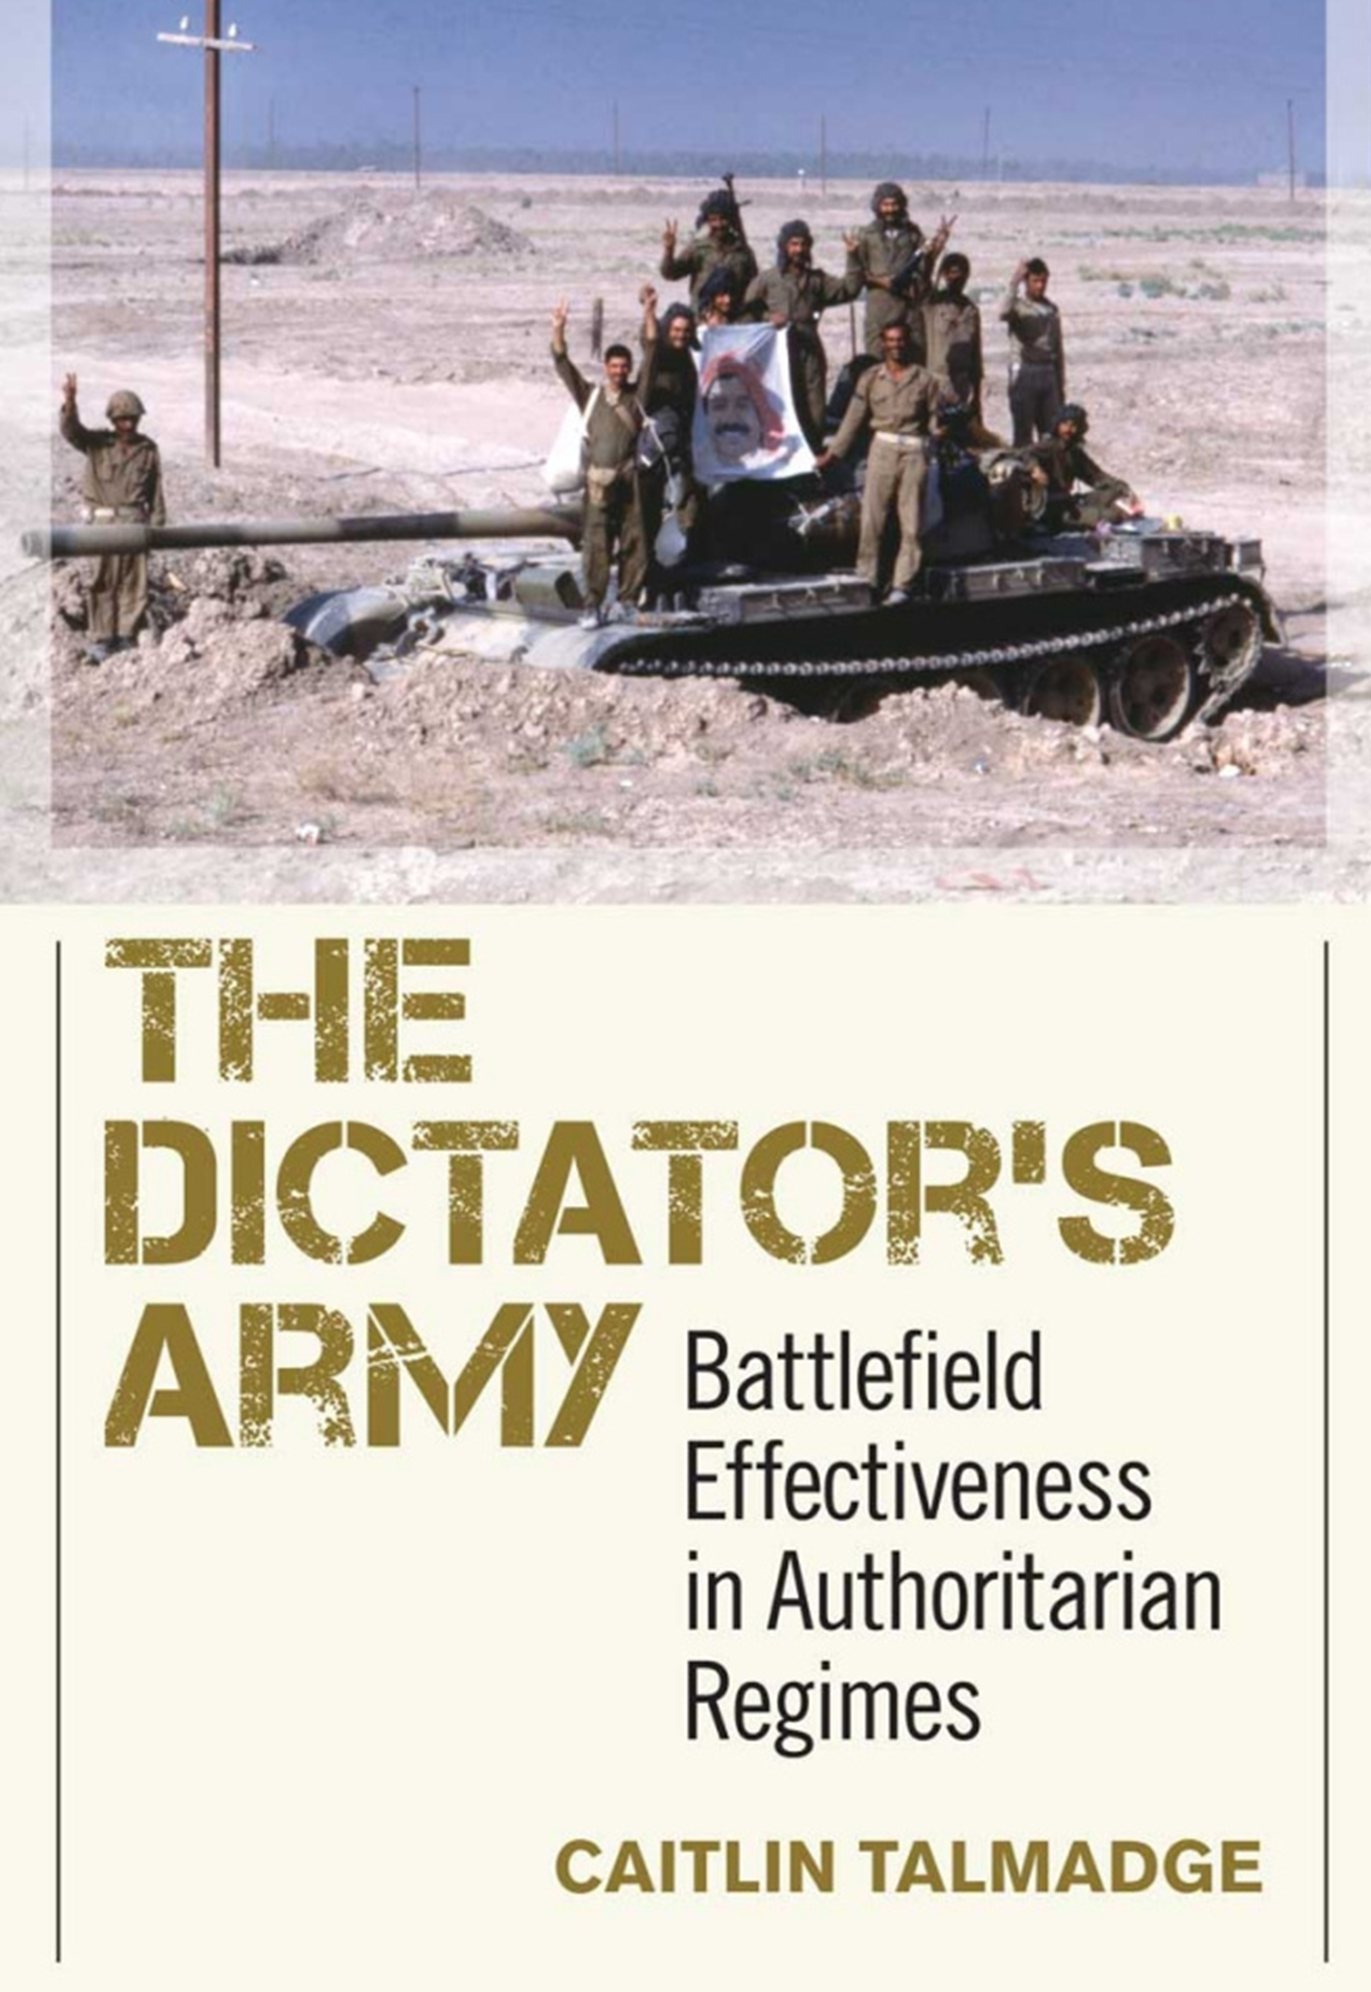 book cover: The Dictator's Army, Battlefield Effectiveness in Authoritarian Regimes, Caitlin Talmadge. Men in uniforms pose on a tank in the desert.